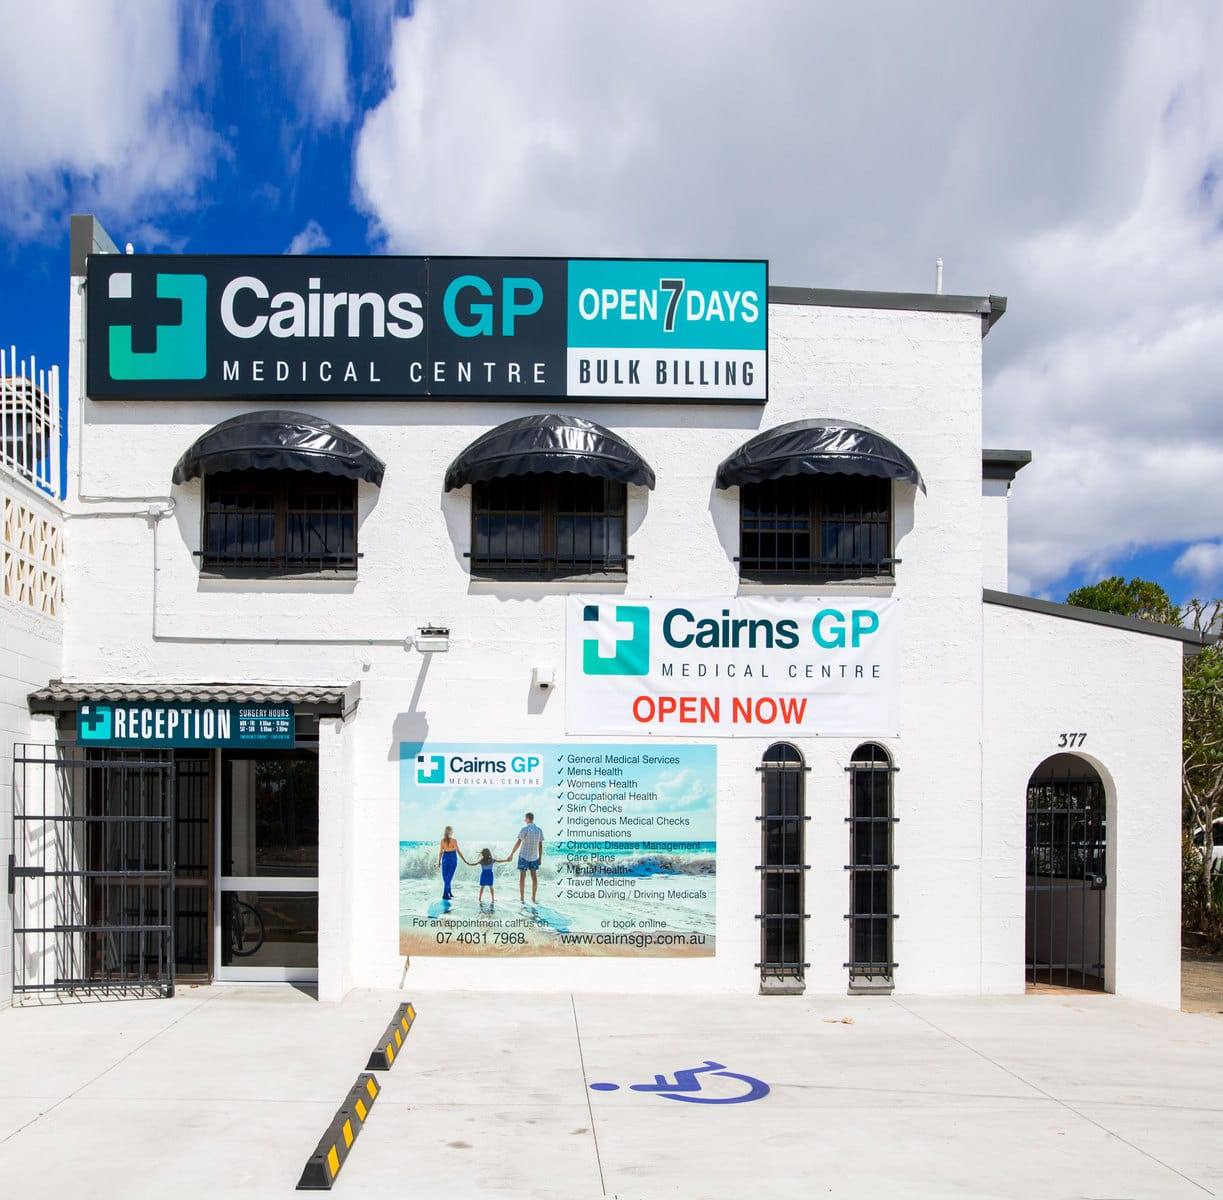 Outside of Cairns GP Medical Centre